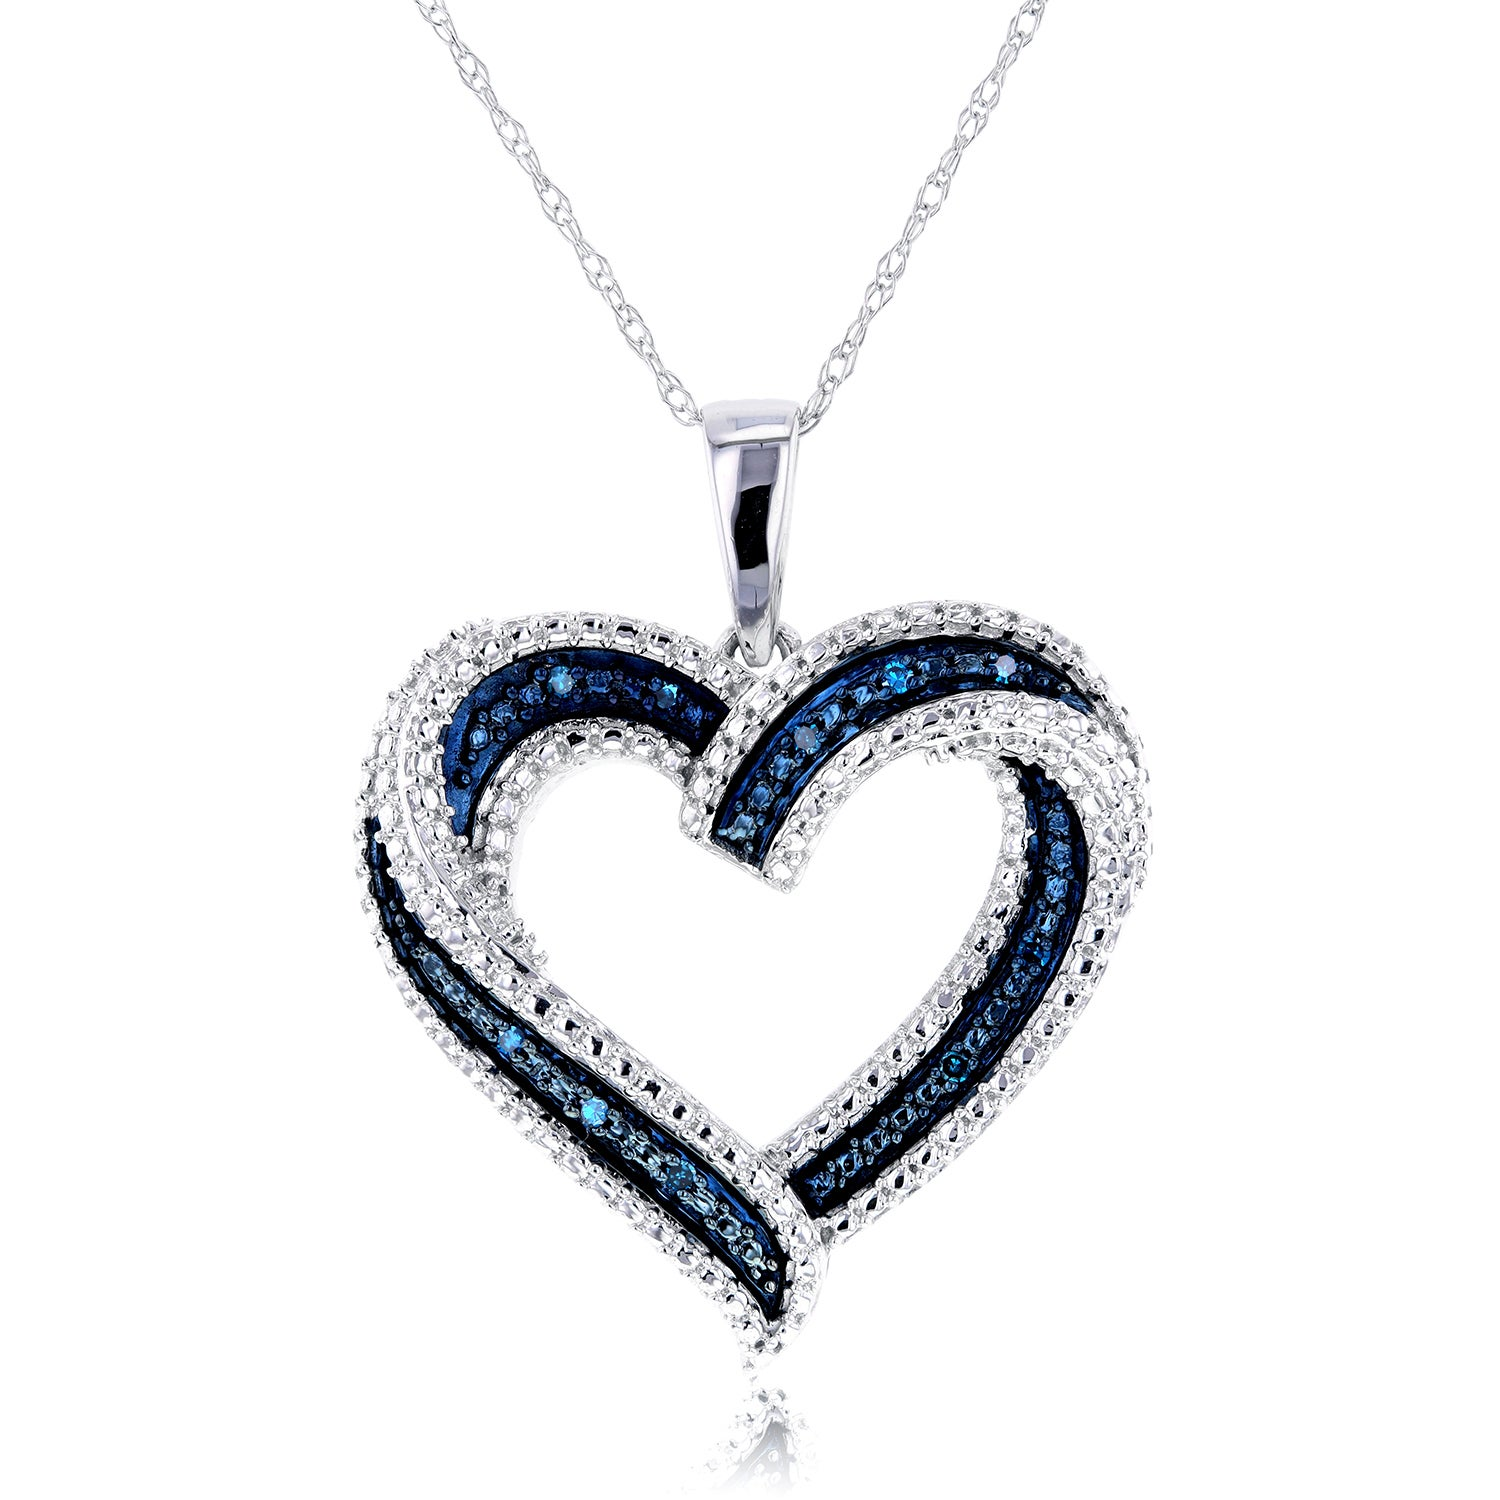 Shop annello by kobelli 10k white gold blue diamond accent heart shop annello by kobelli 10k white gold blue diamond accent heart pendant free shipping today overstock 11200626 aloadofball Image collections